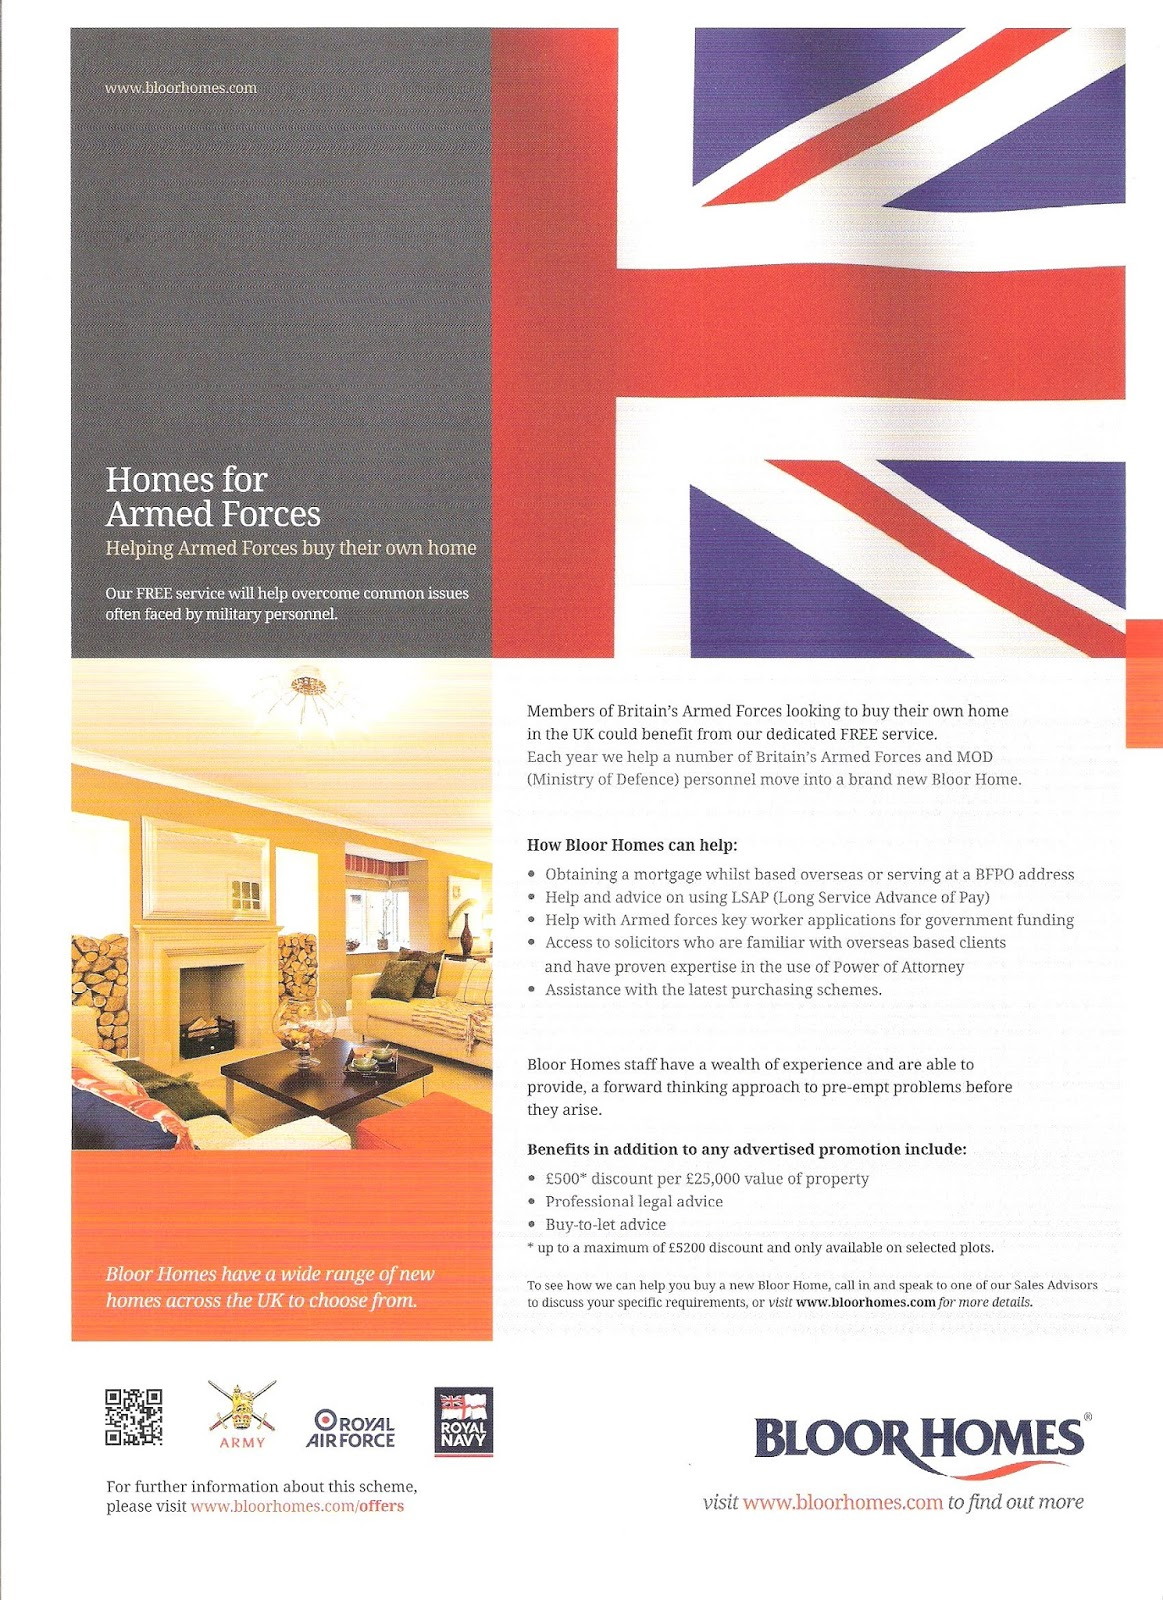 HEREFORD HIVE: Bloor Homes For Armed Forces